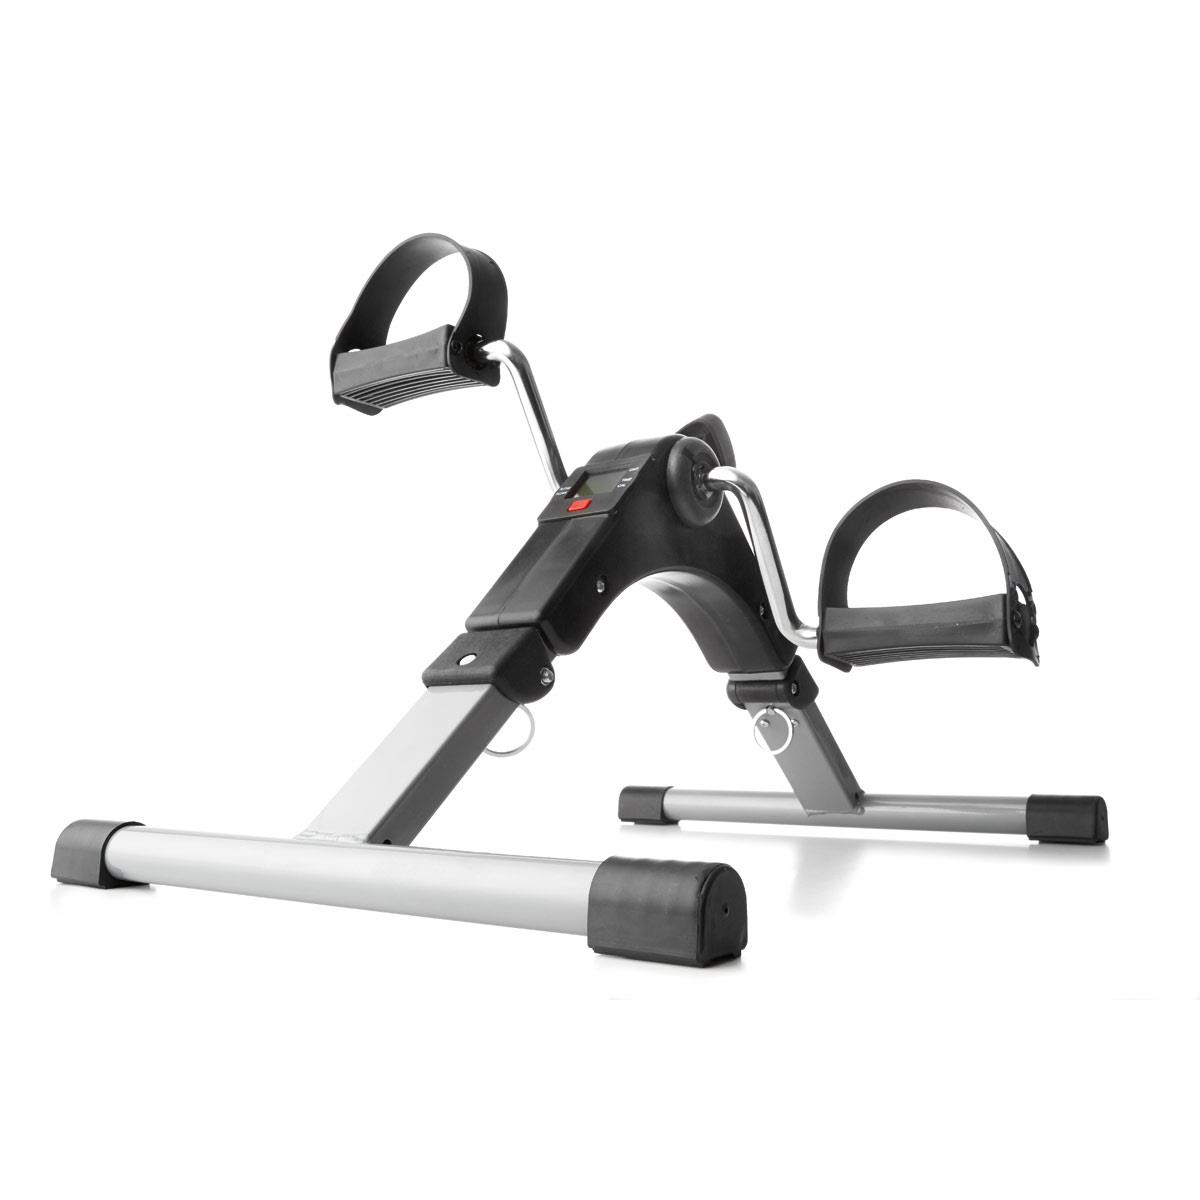 Delicieux Mini Exercise Bike | Kmart